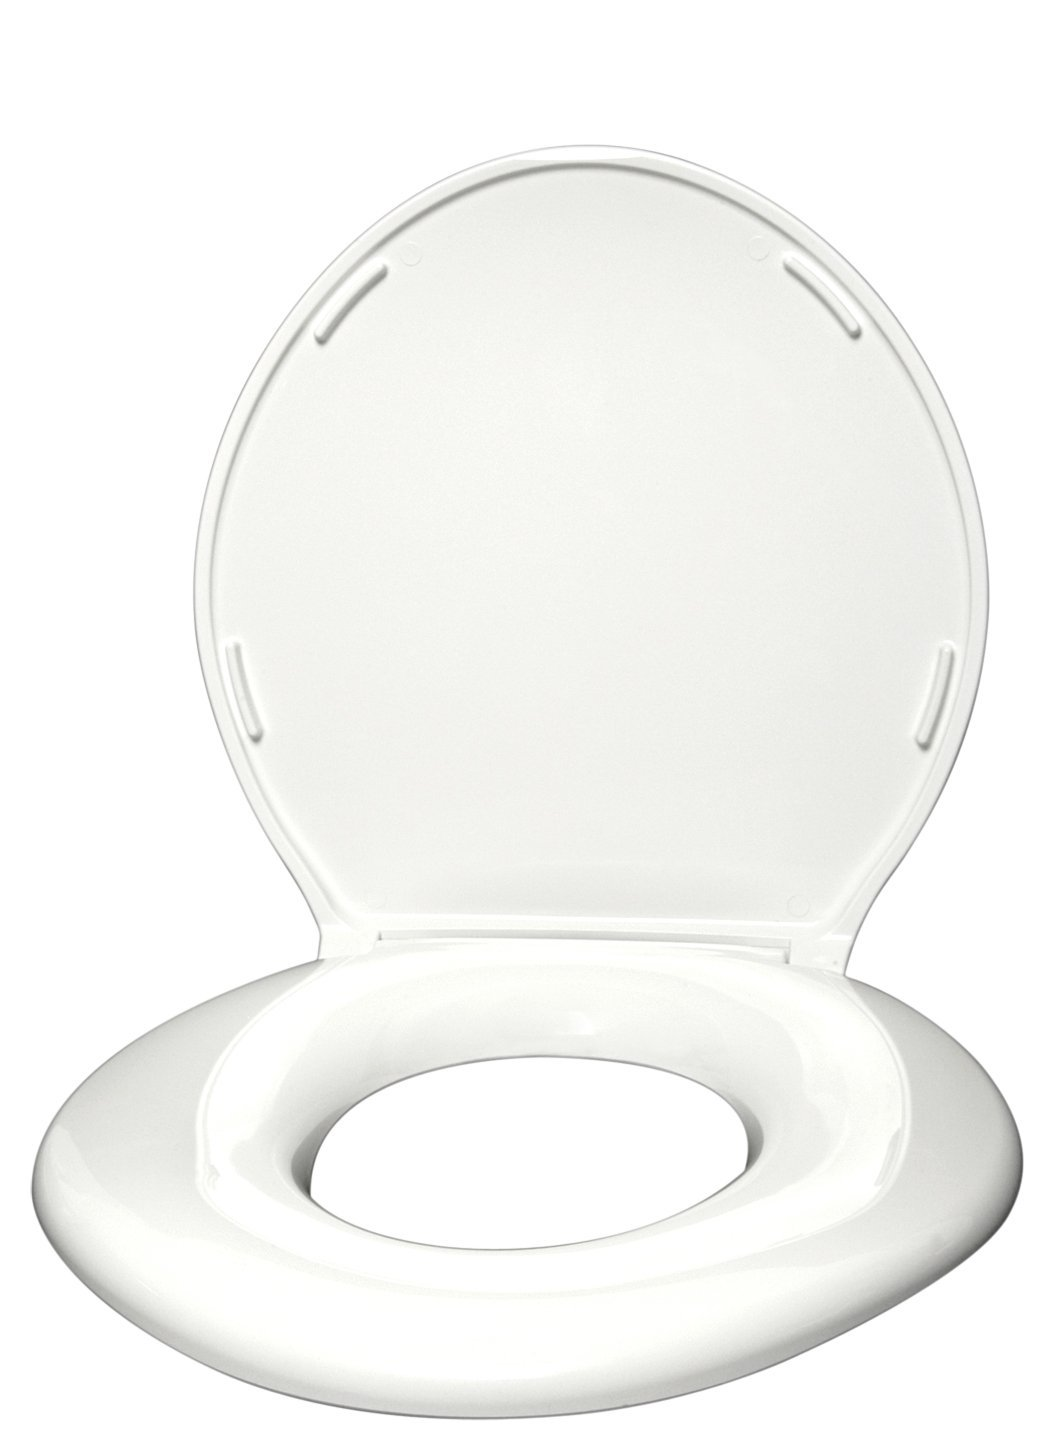 Big John Bariatric Toilet Seat 1-W Closed with Cover - White - 1200lbs